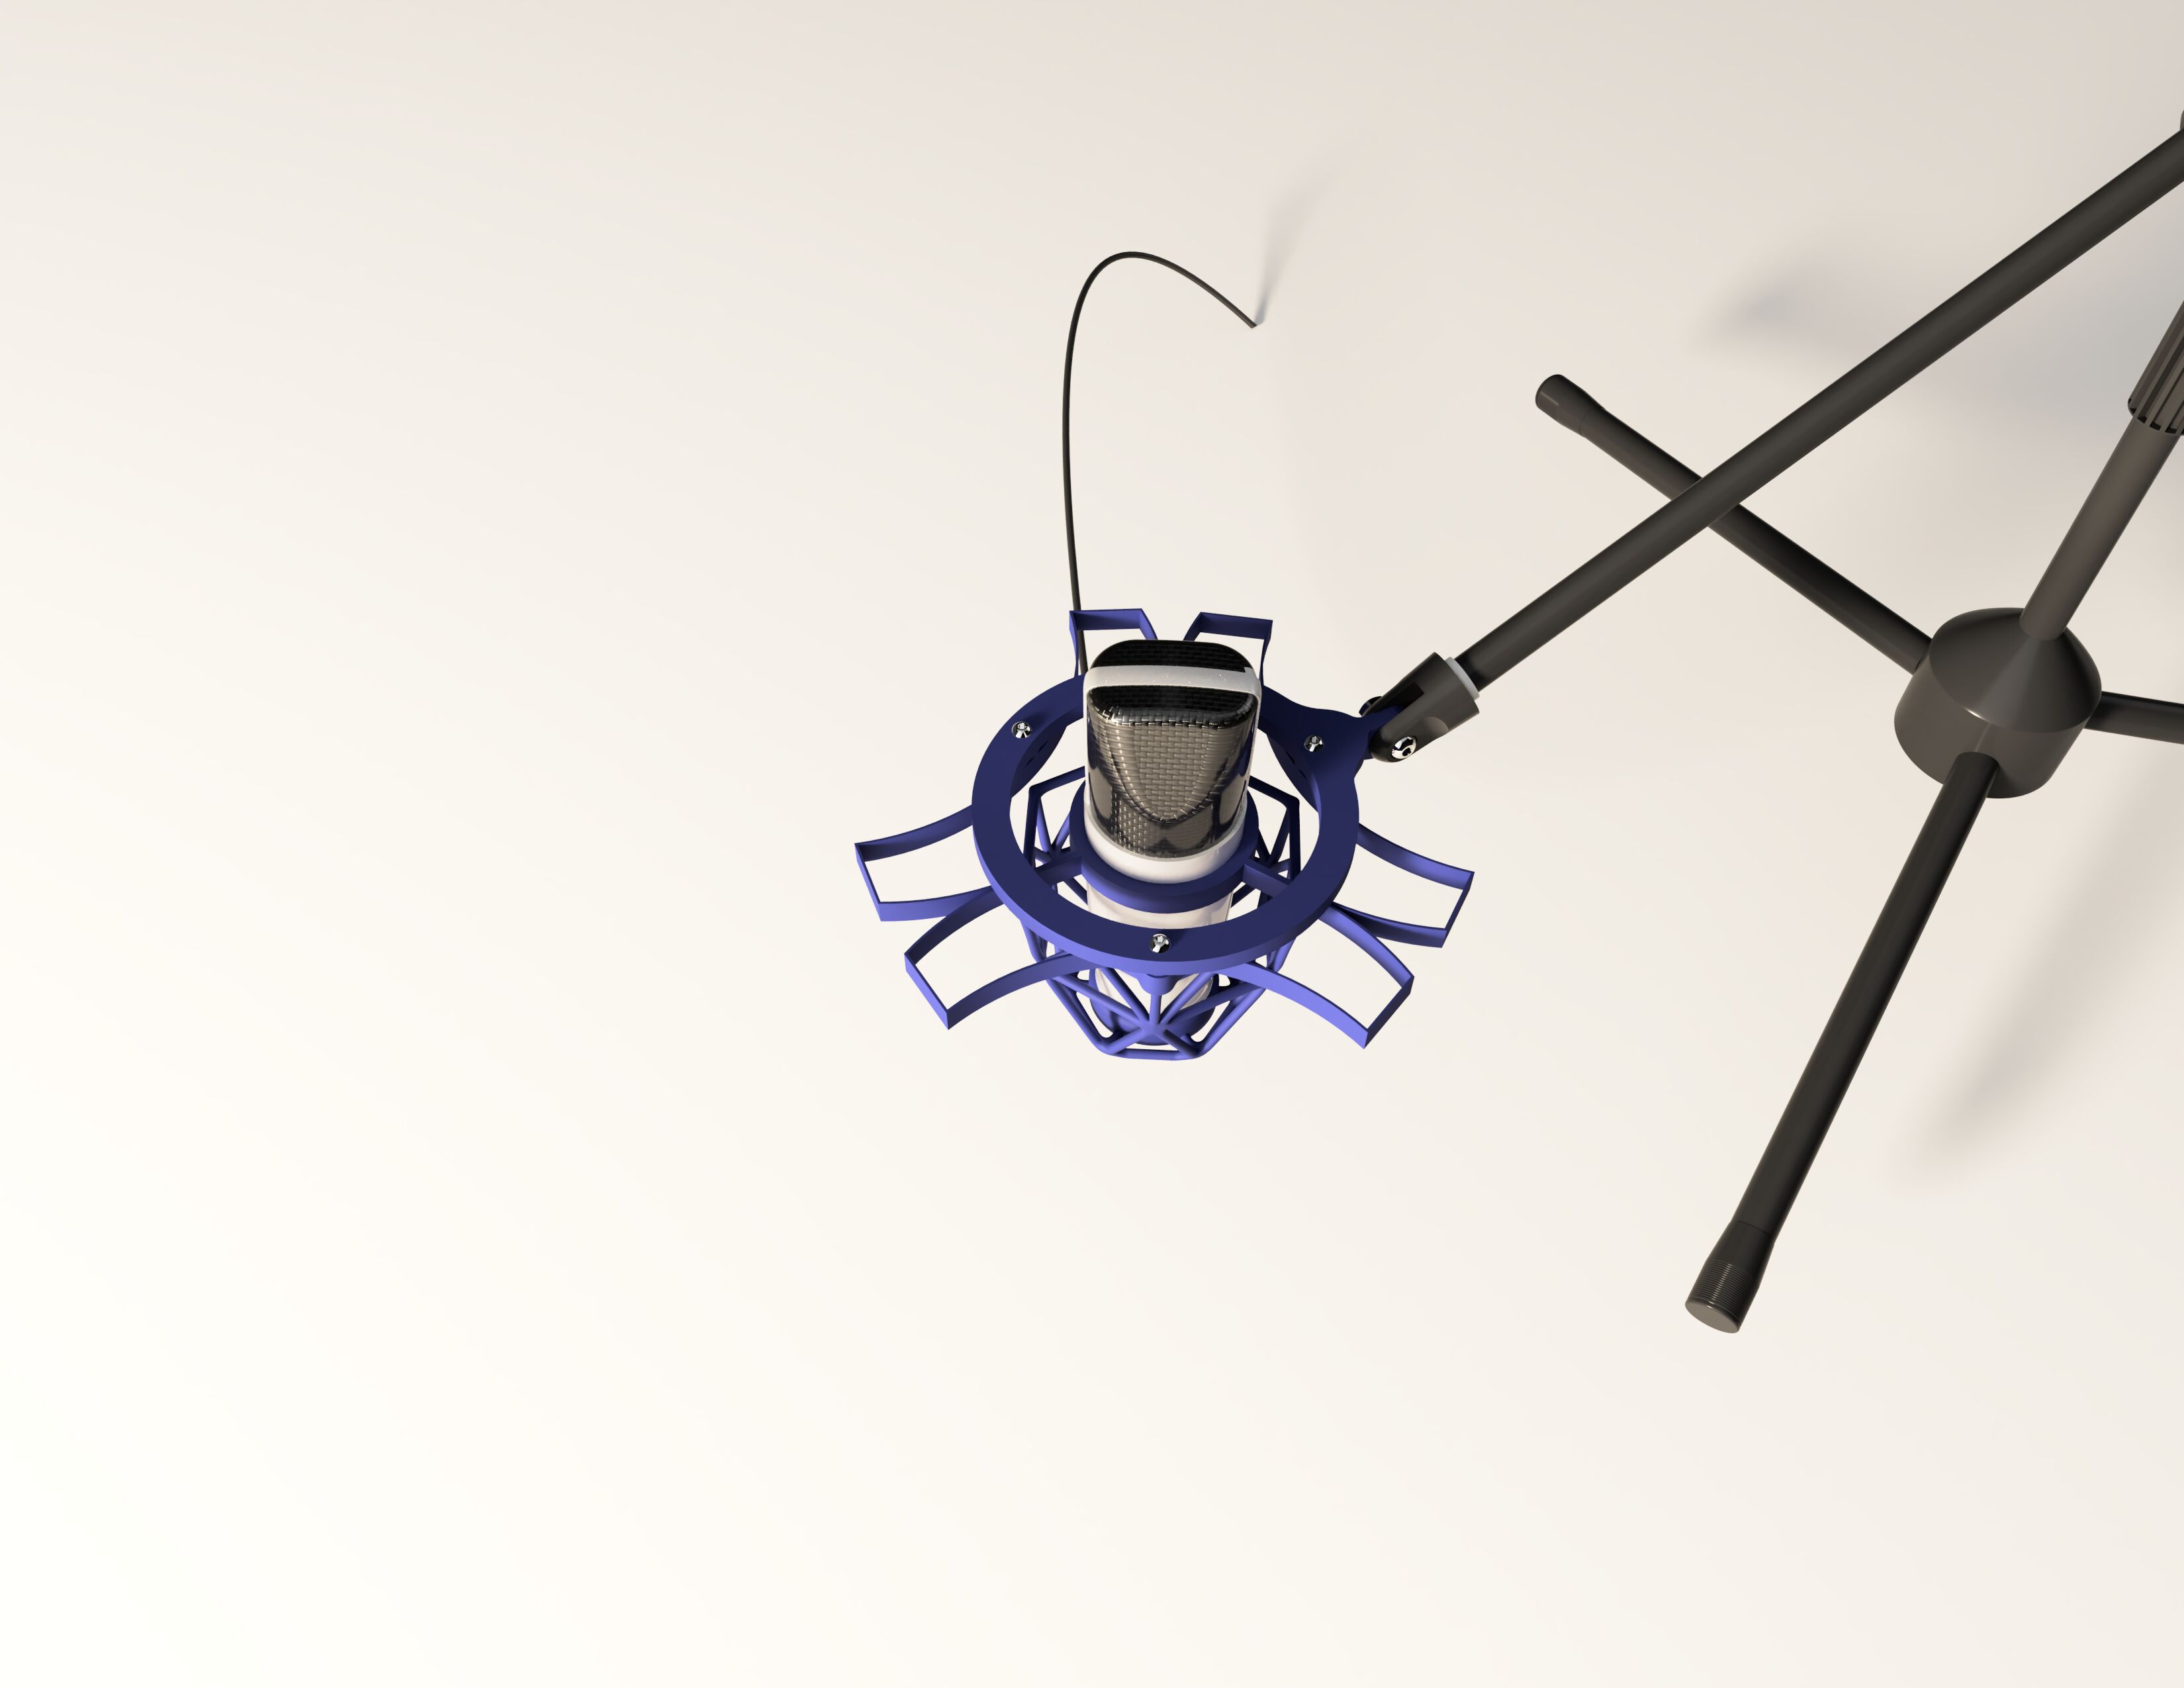 Microphone-shock-mount-assembly-2020-jun-23-12-57-55pm-000-customizedview7209955736-png-3500-3500